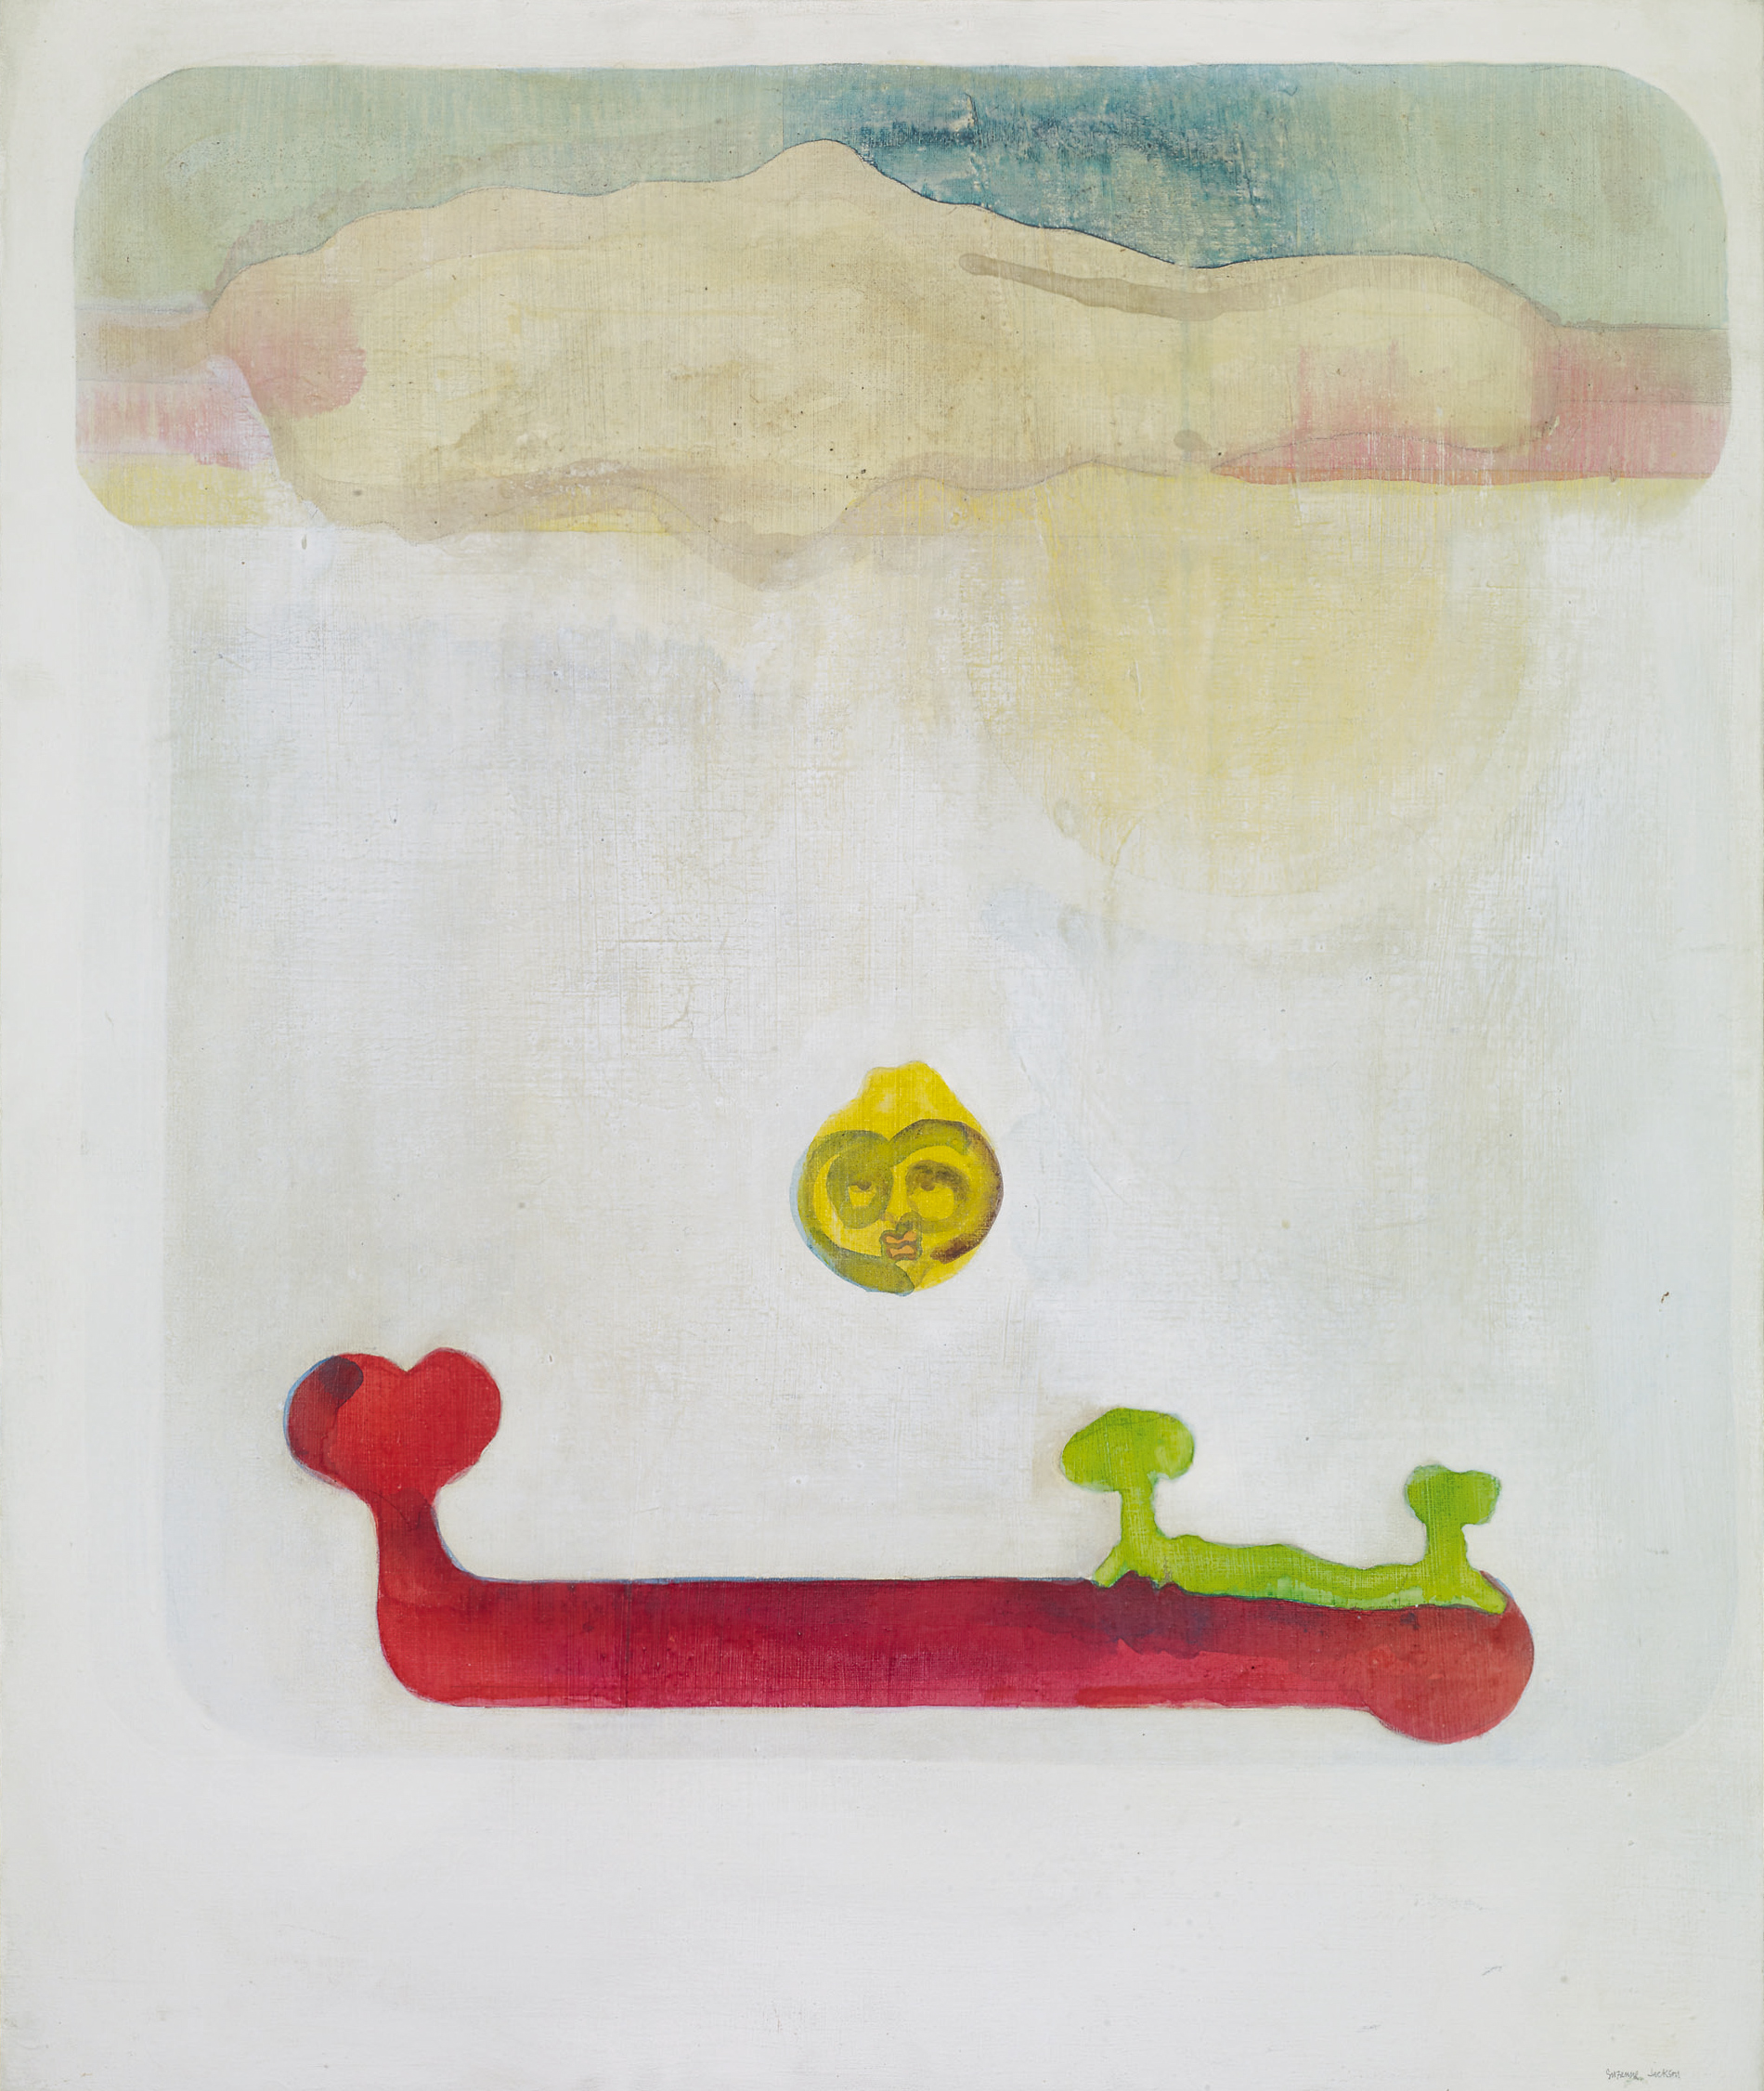 Watch Mist, by Suzanne Jackson, c.1975